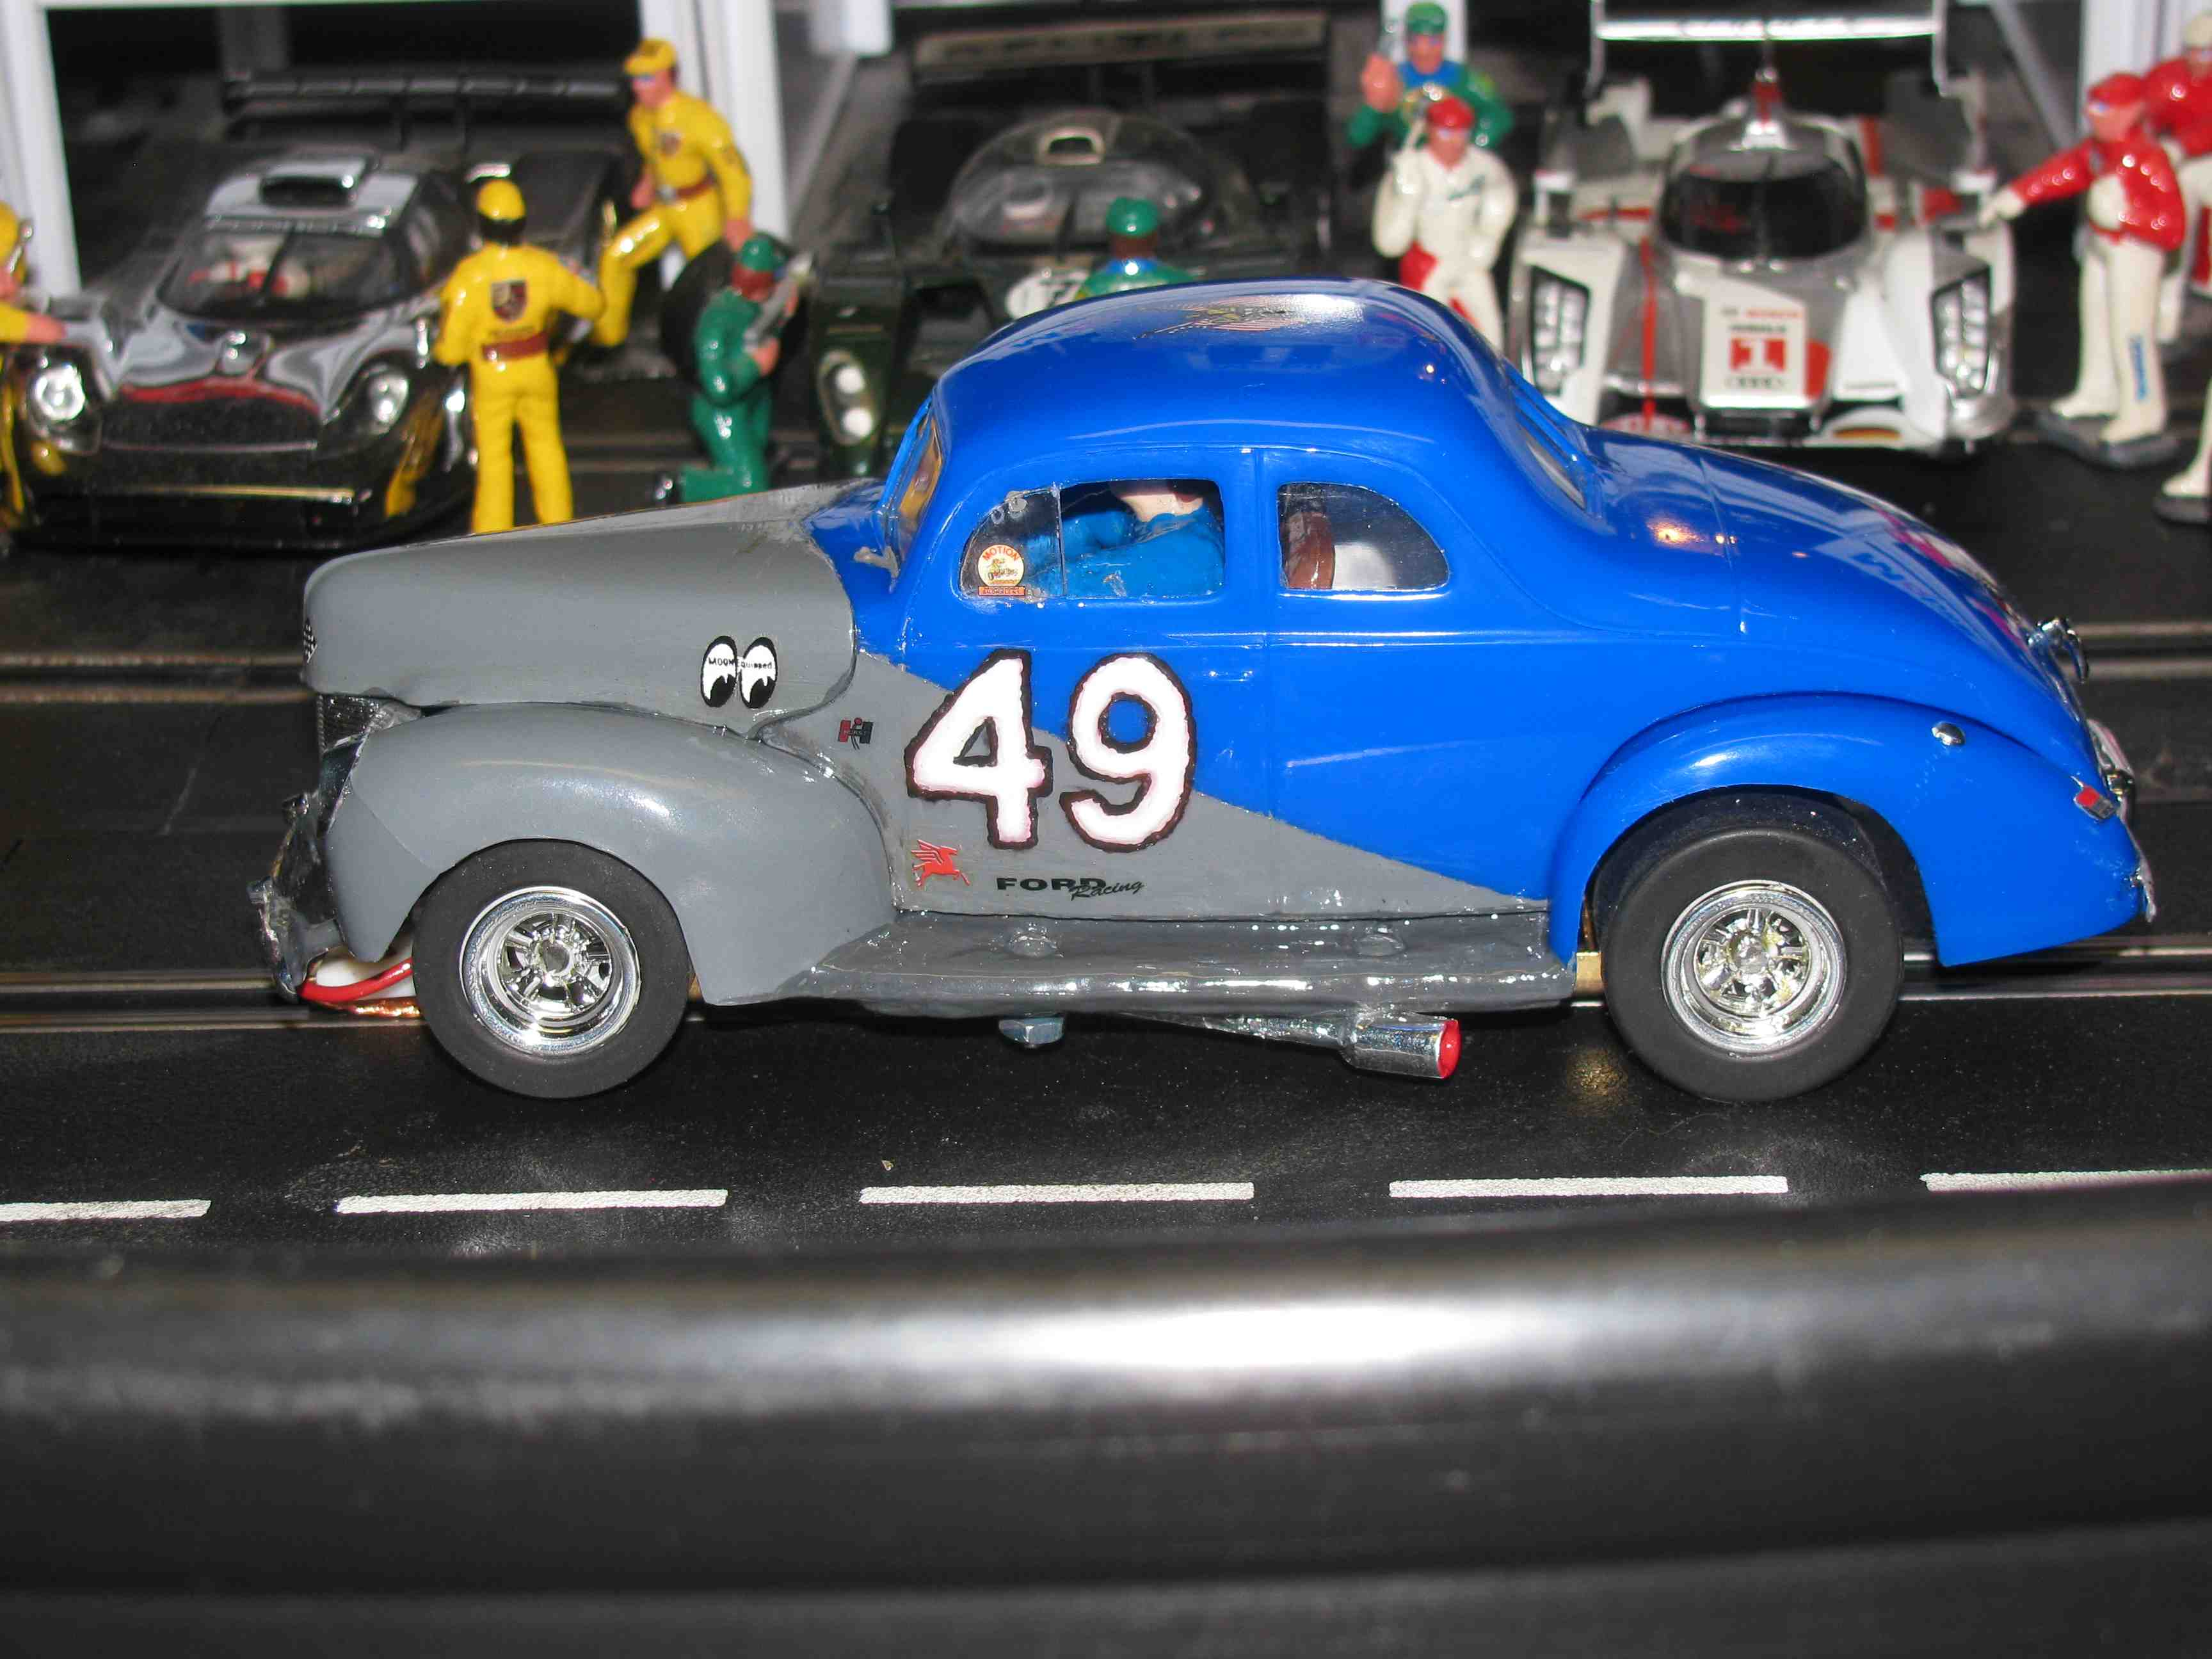 * SOLD * * For Charles E. *SUPER SPEACIAL HOLIDAY SALE PRICE* Vintage AMT 1940 Ford V8 Jalopy Coupe 1:24 Scale - Car #49